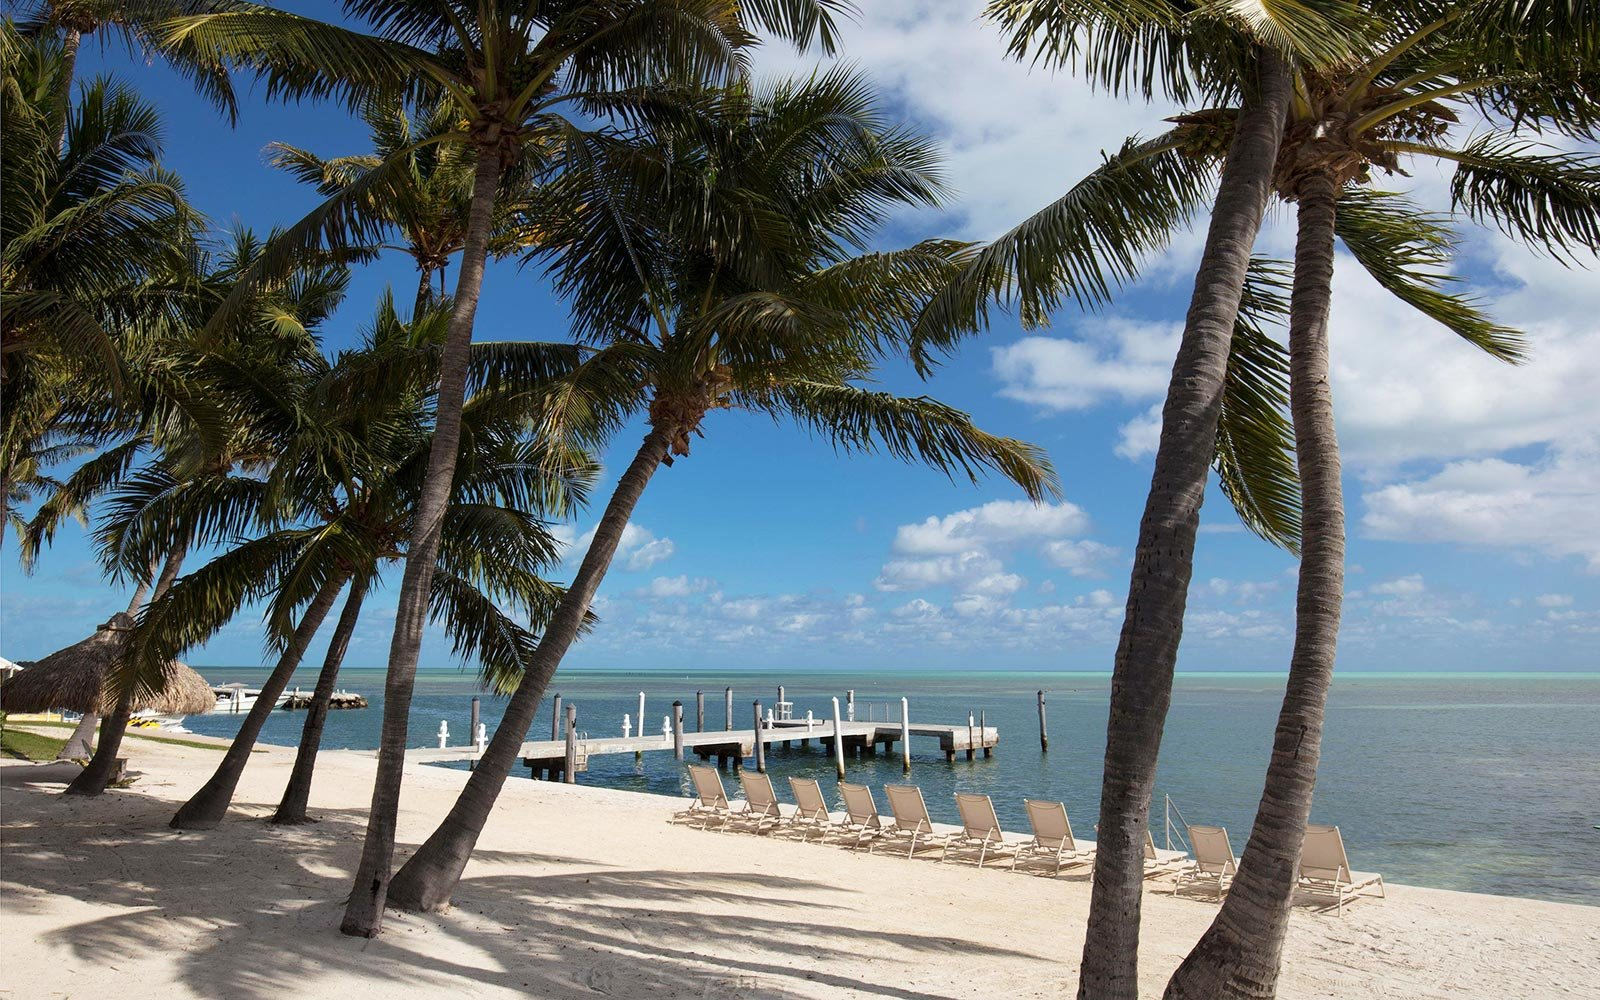 Enjoy A Three Night Stay At Amara Cay In Florida For Only